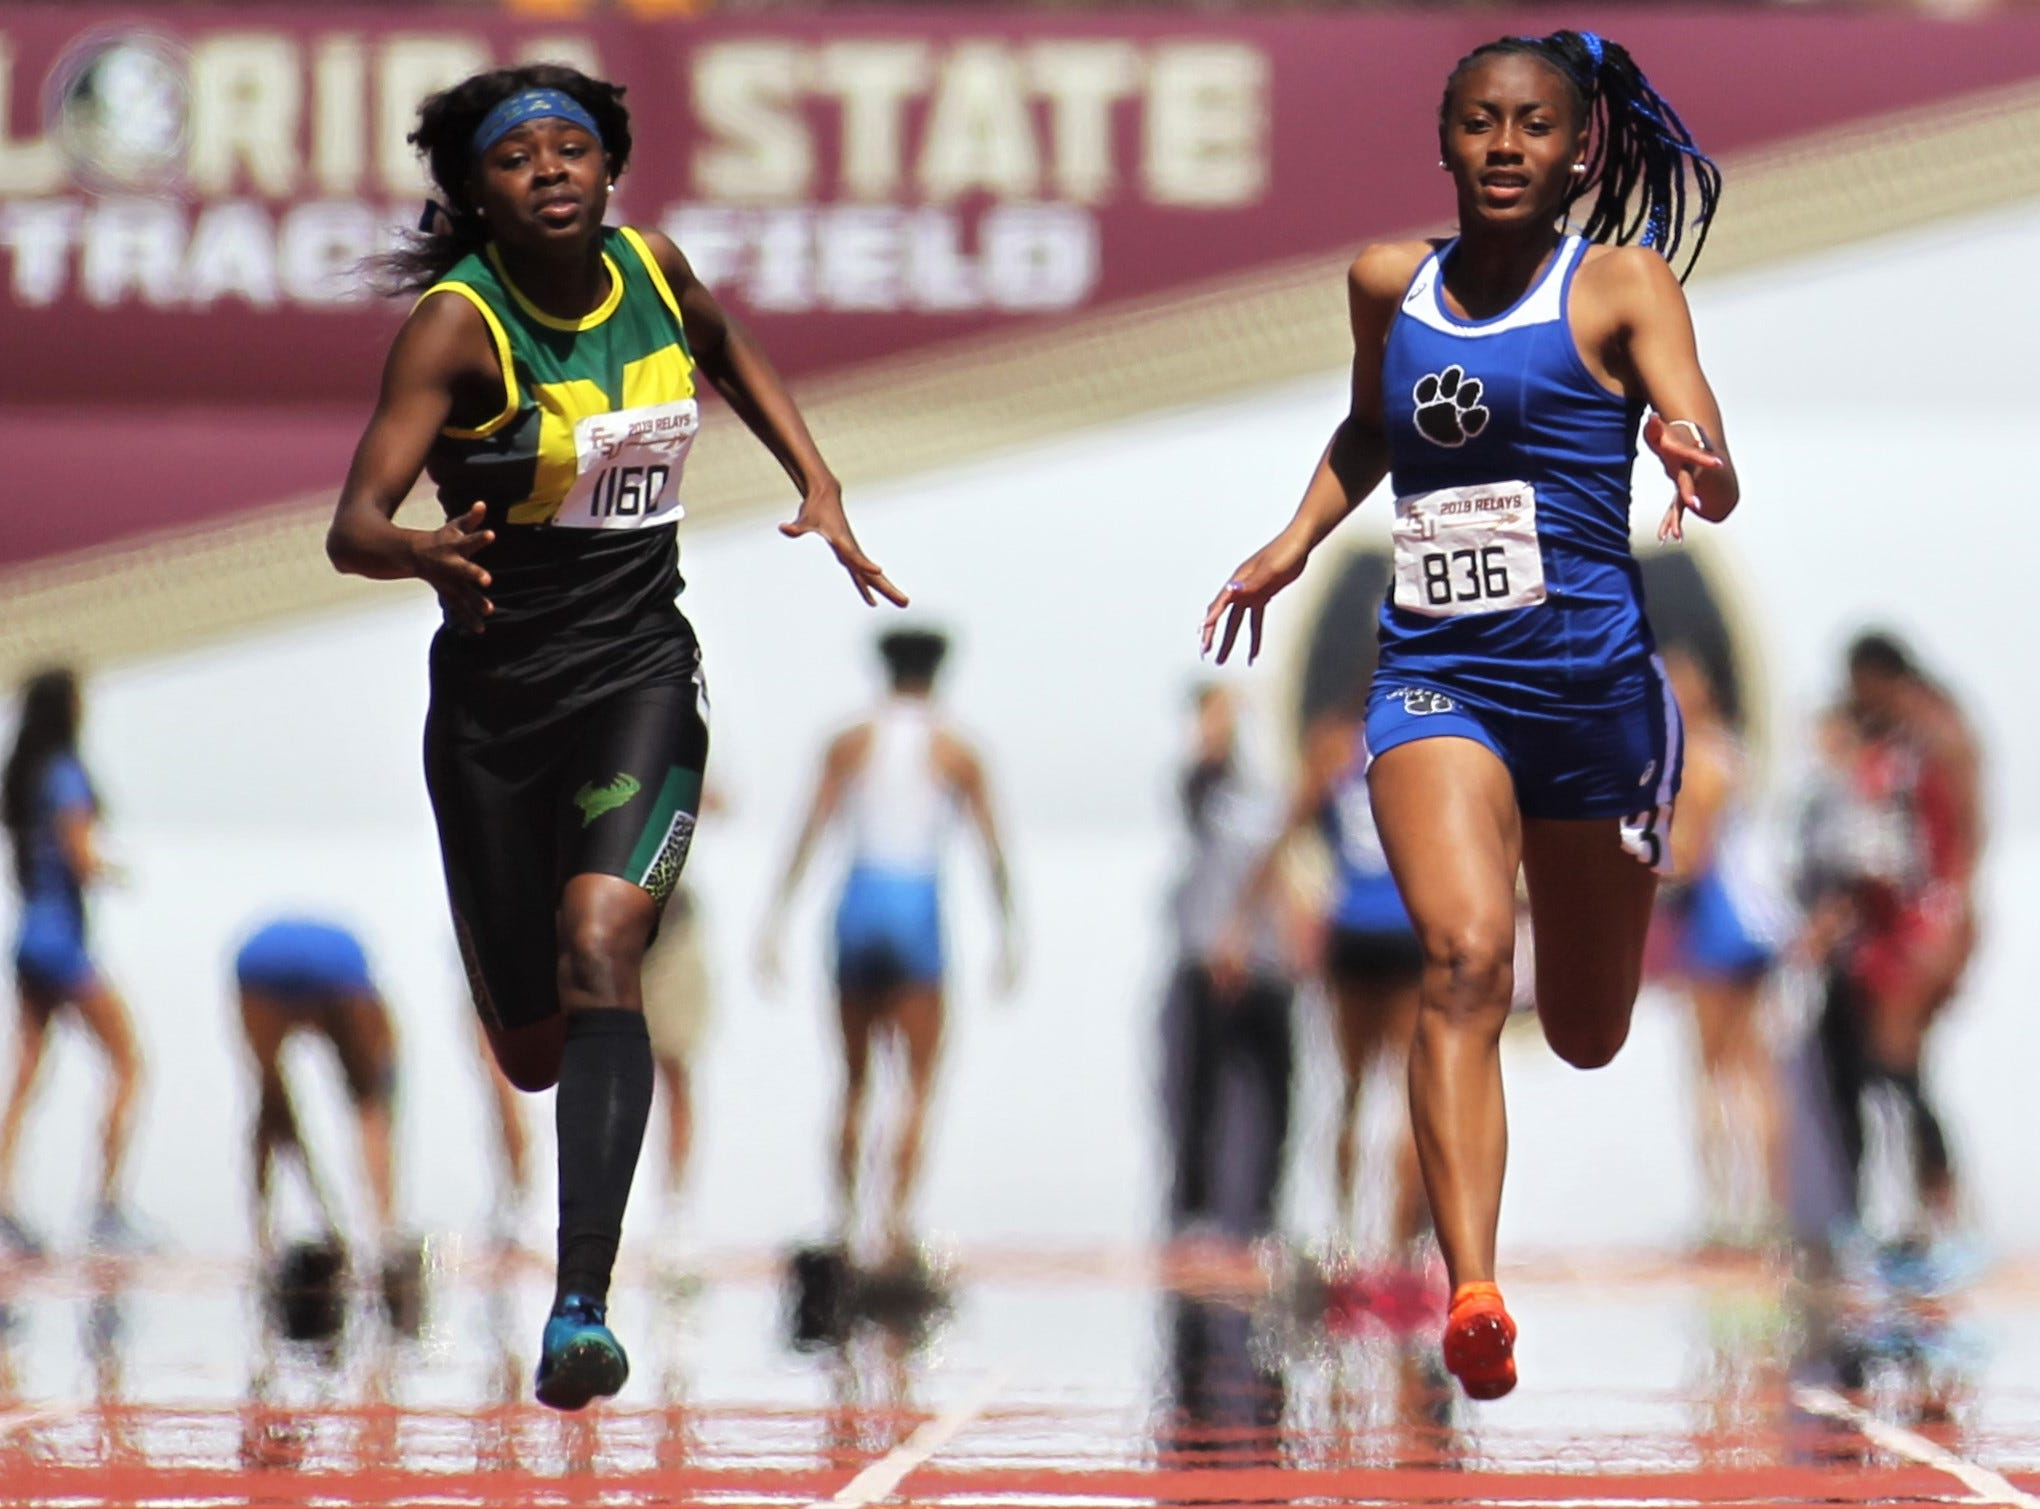 The 40th annual FSU Relays at Mike Long Track on Saturday, March 23, 2019.